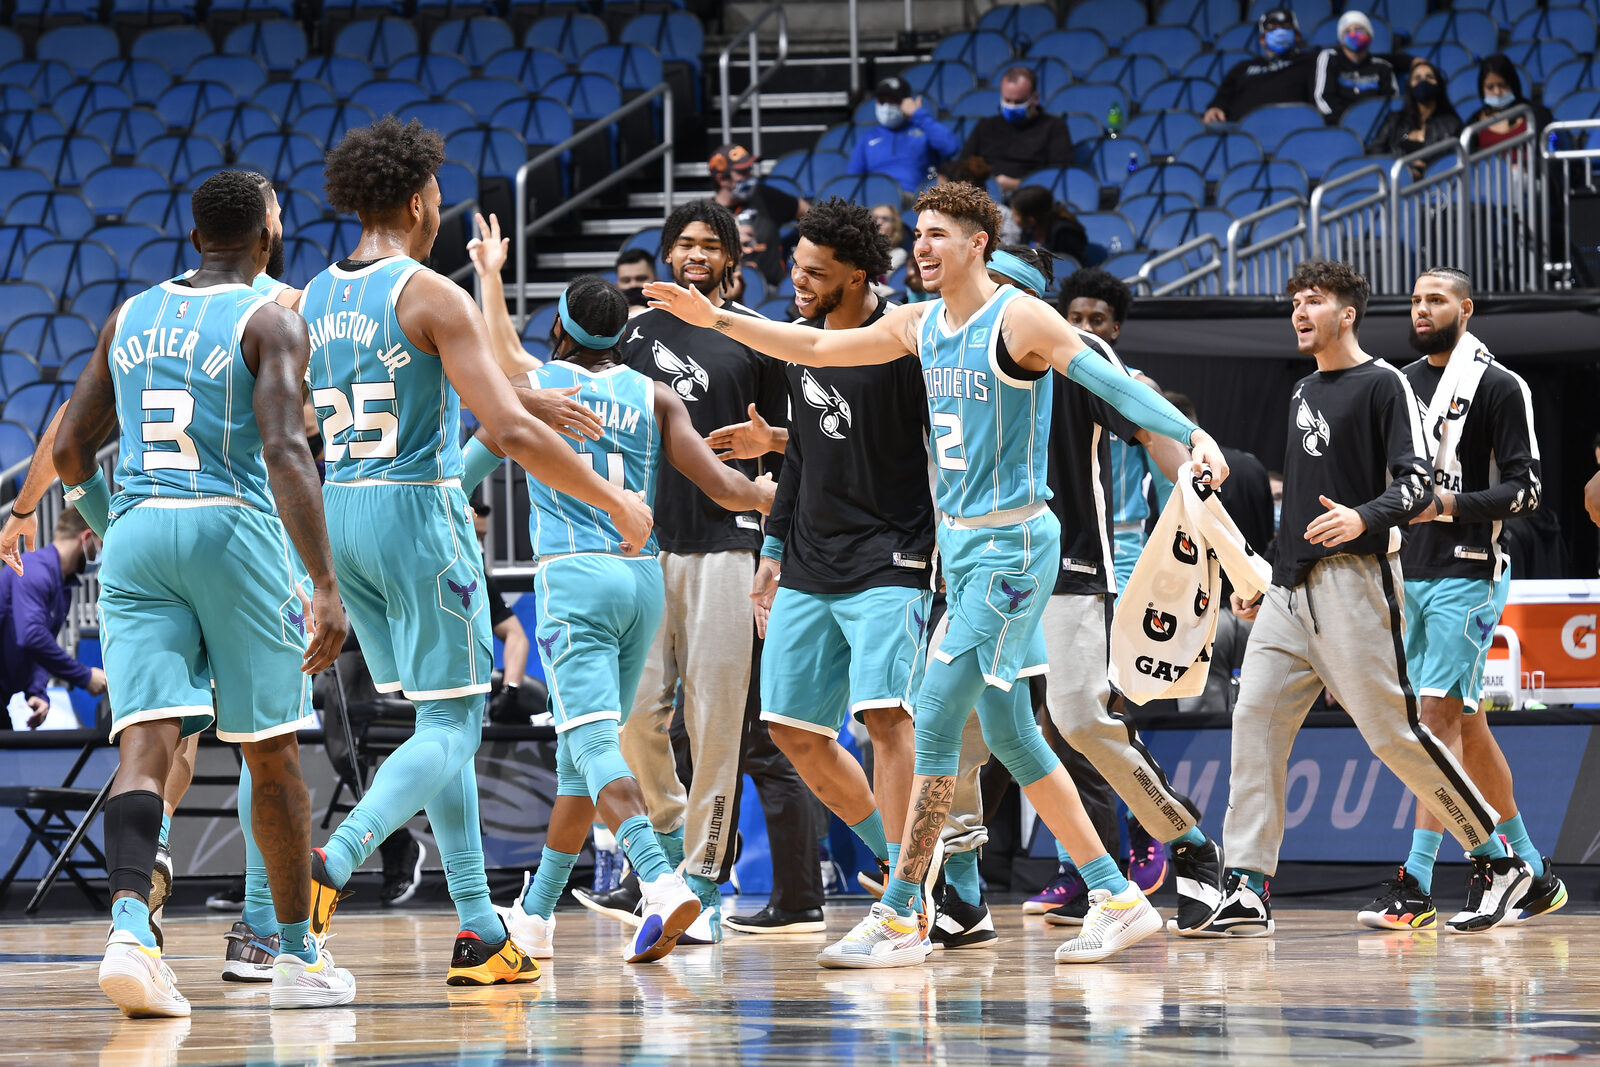 Ball and Hornets celebrate